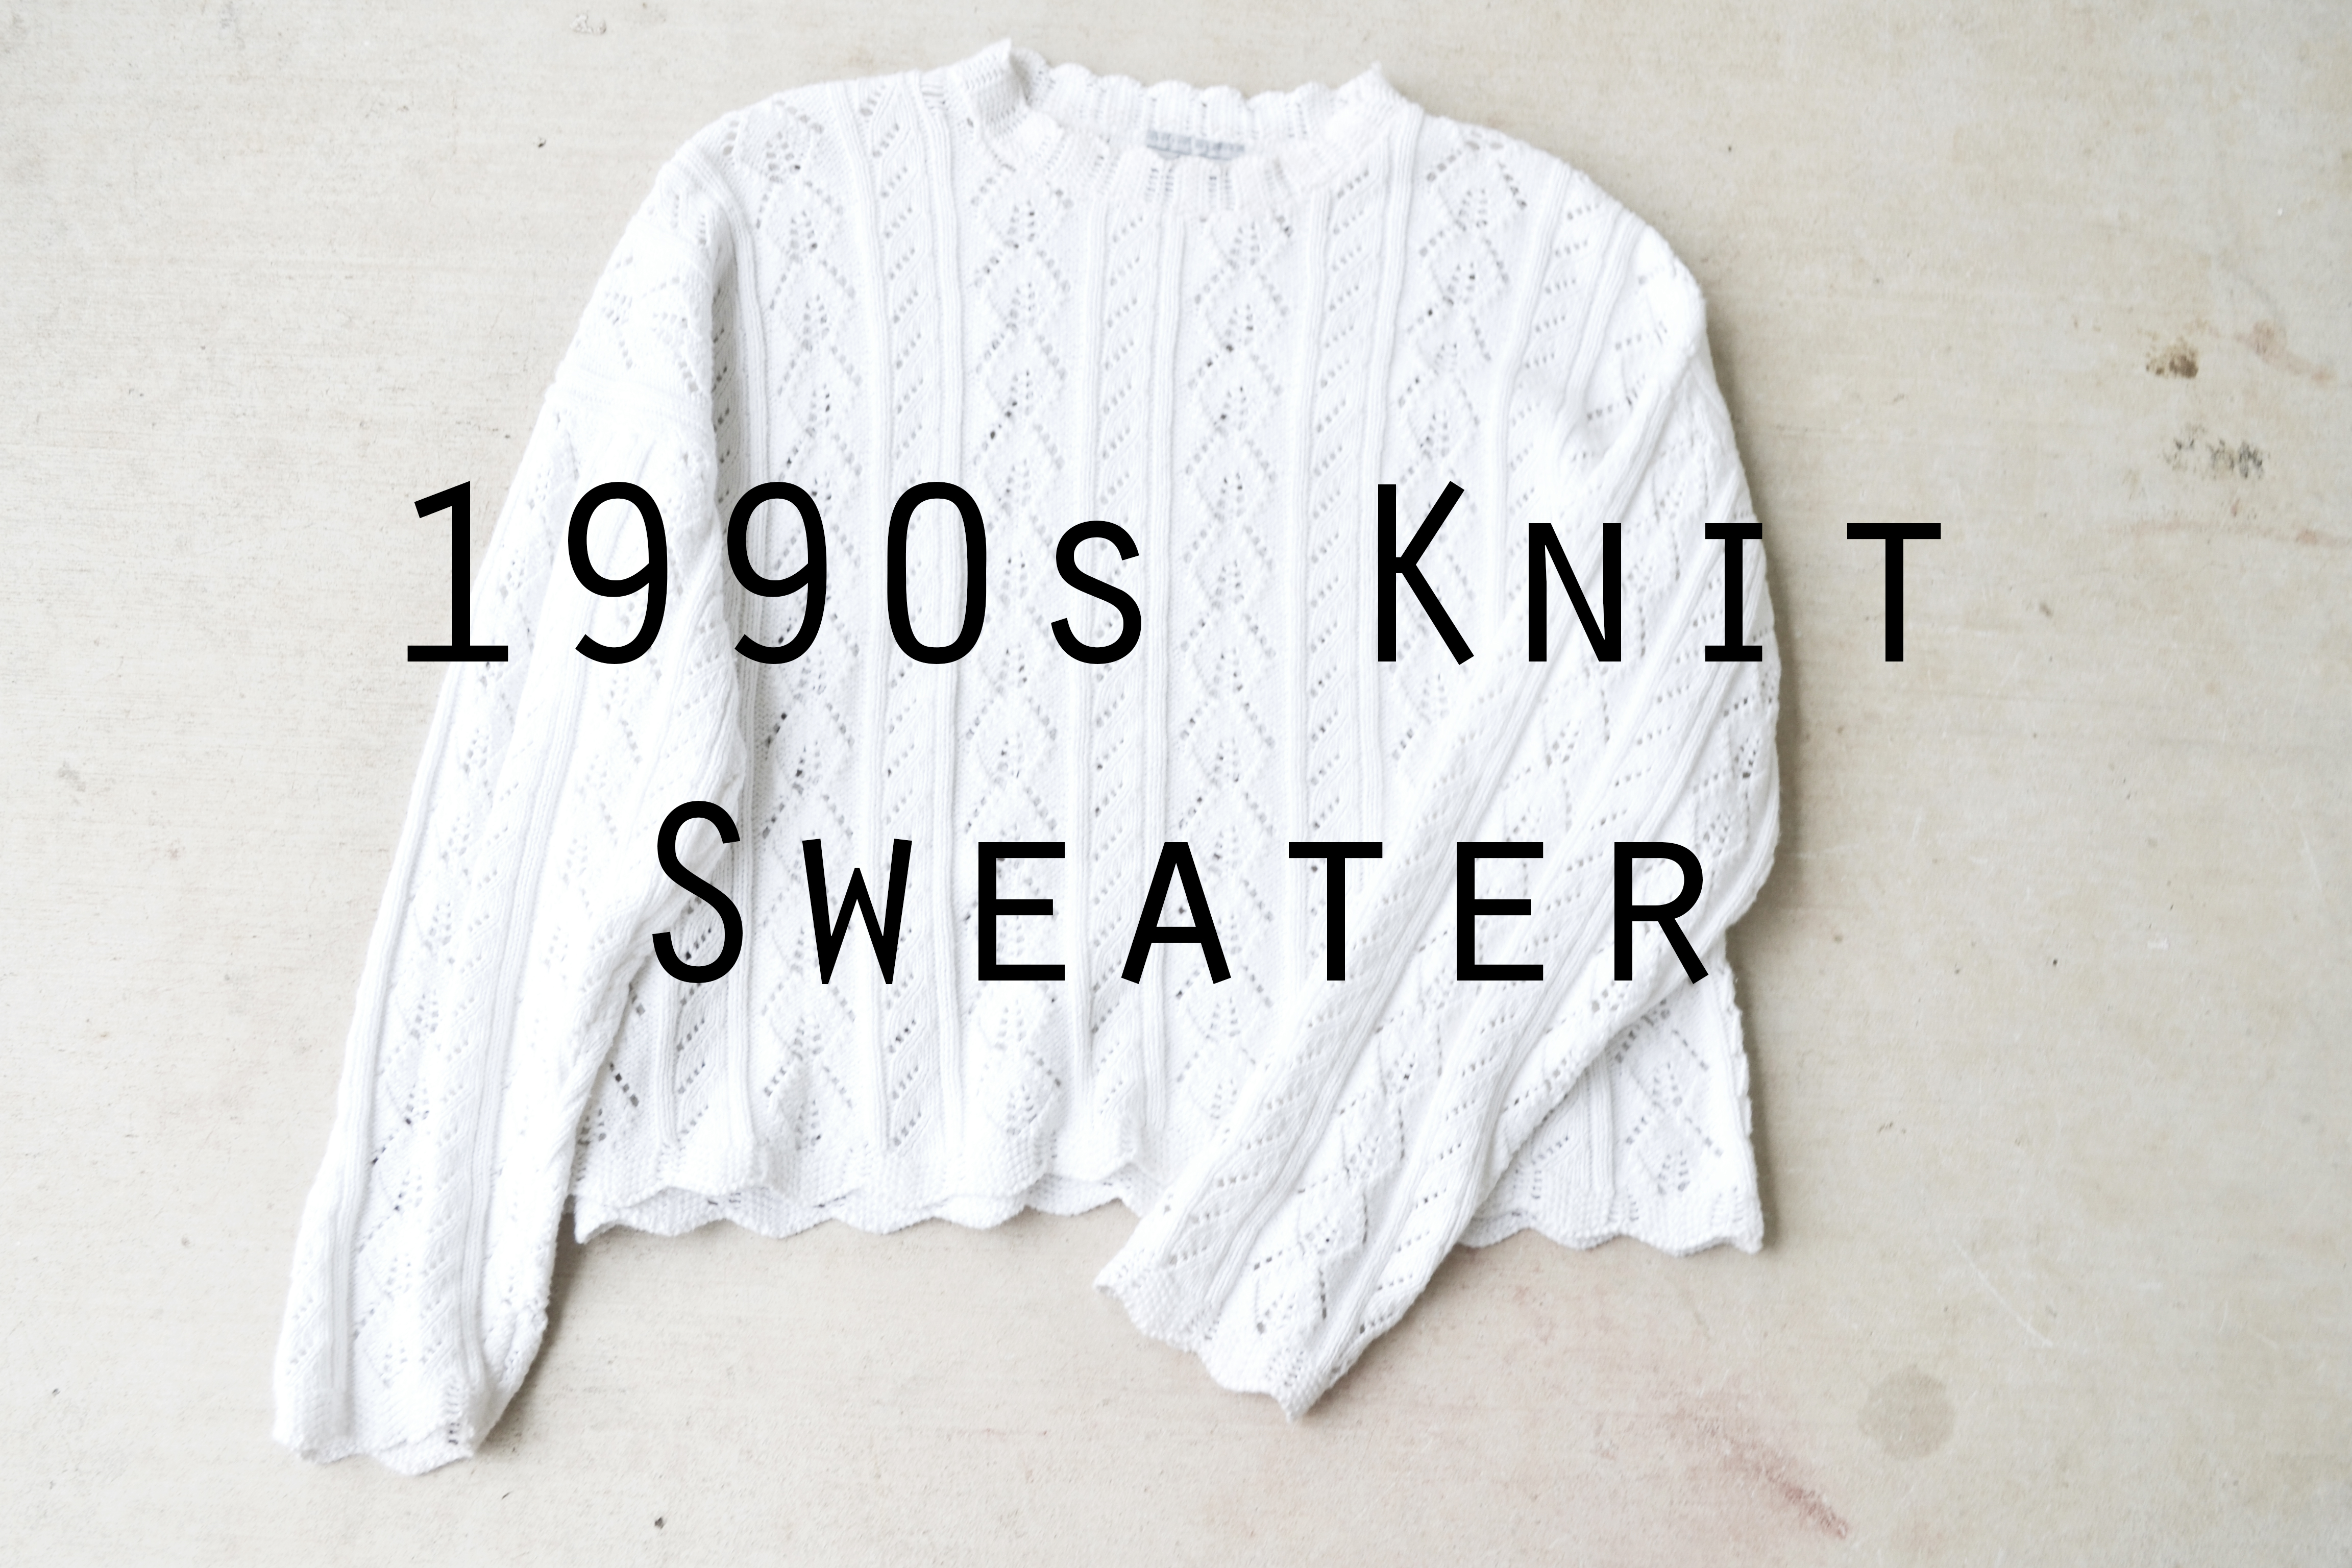 Sweater_Knit_1990s